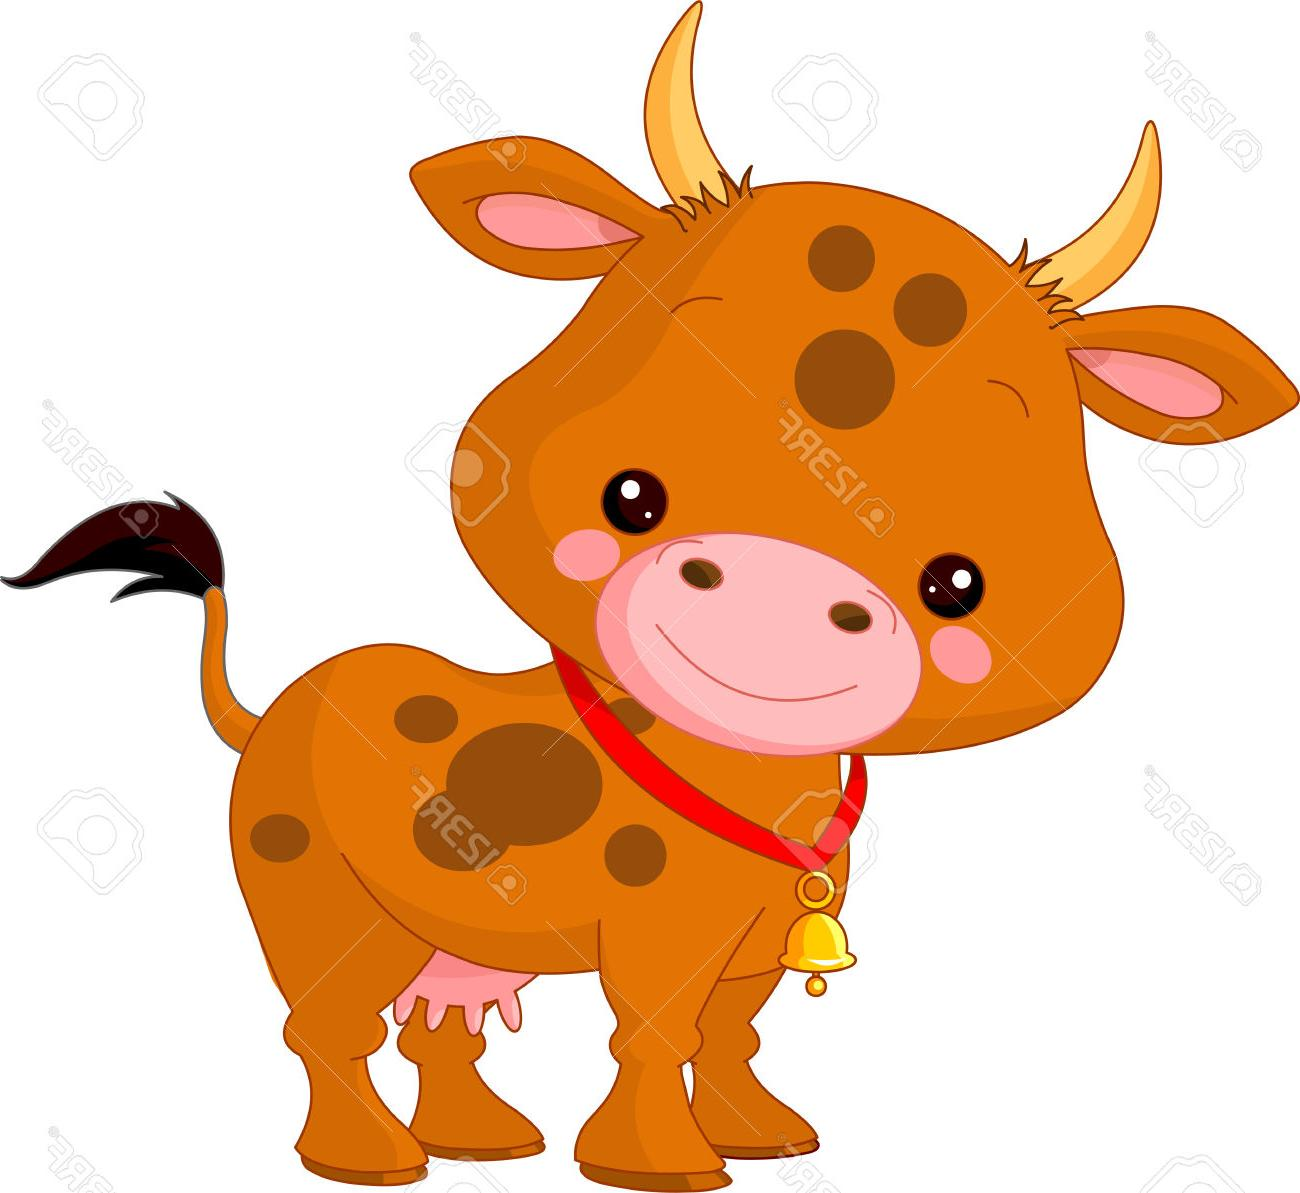 1300x1193 Best 15 Farm Animals Illustration Of Cute Cow Stock Vector Clipart